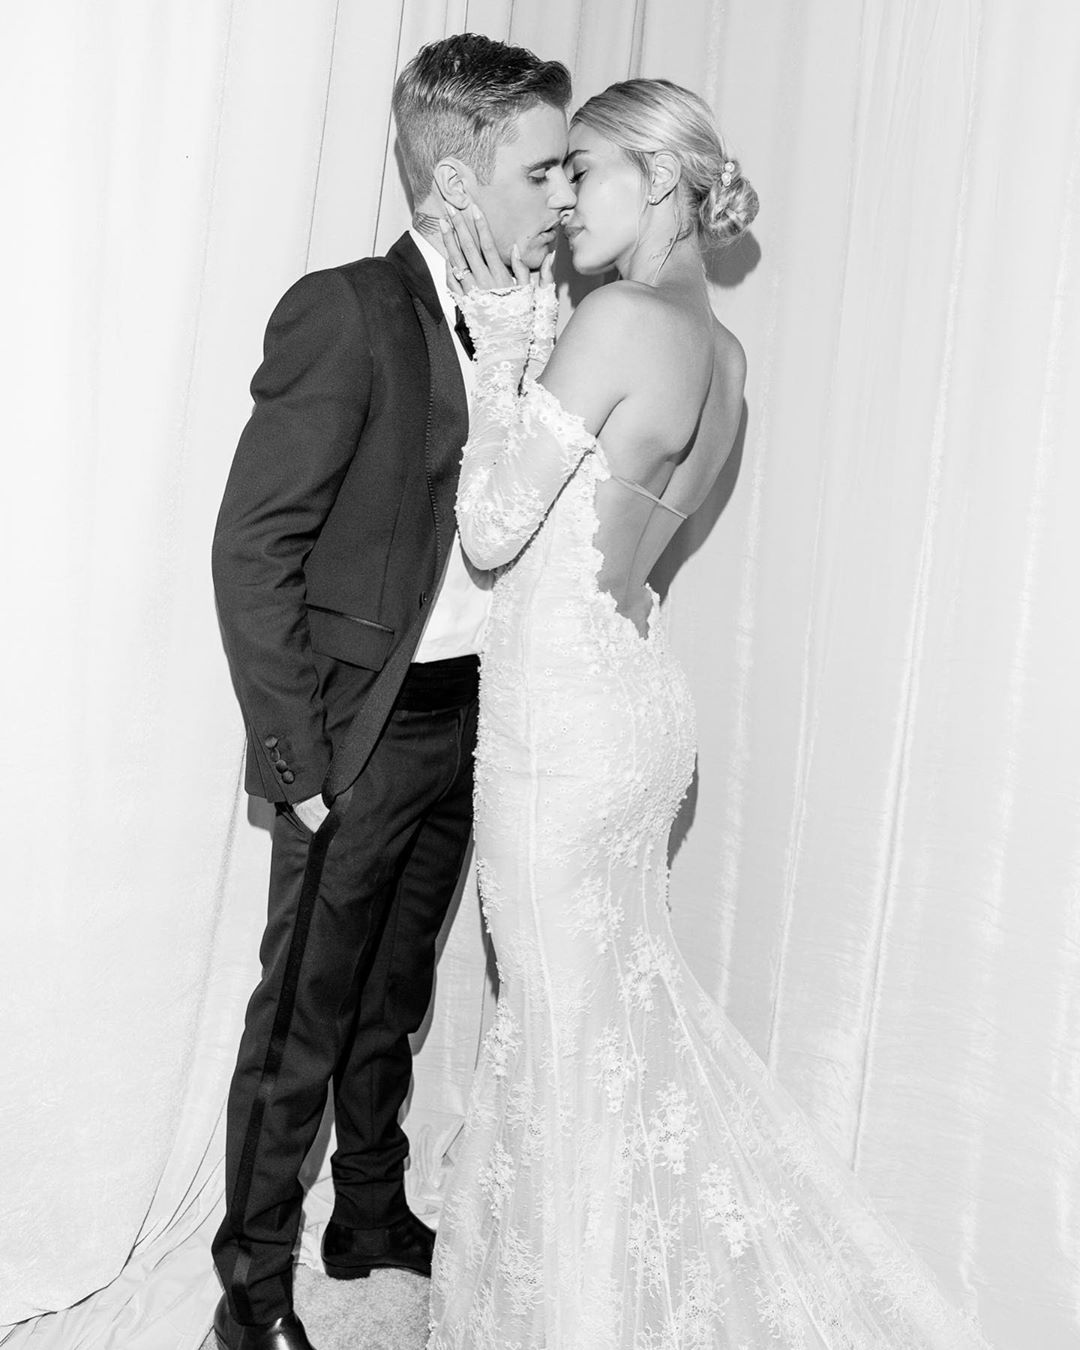 Hailey cupped her husband's face as the newlyweds shared a passionate kiss